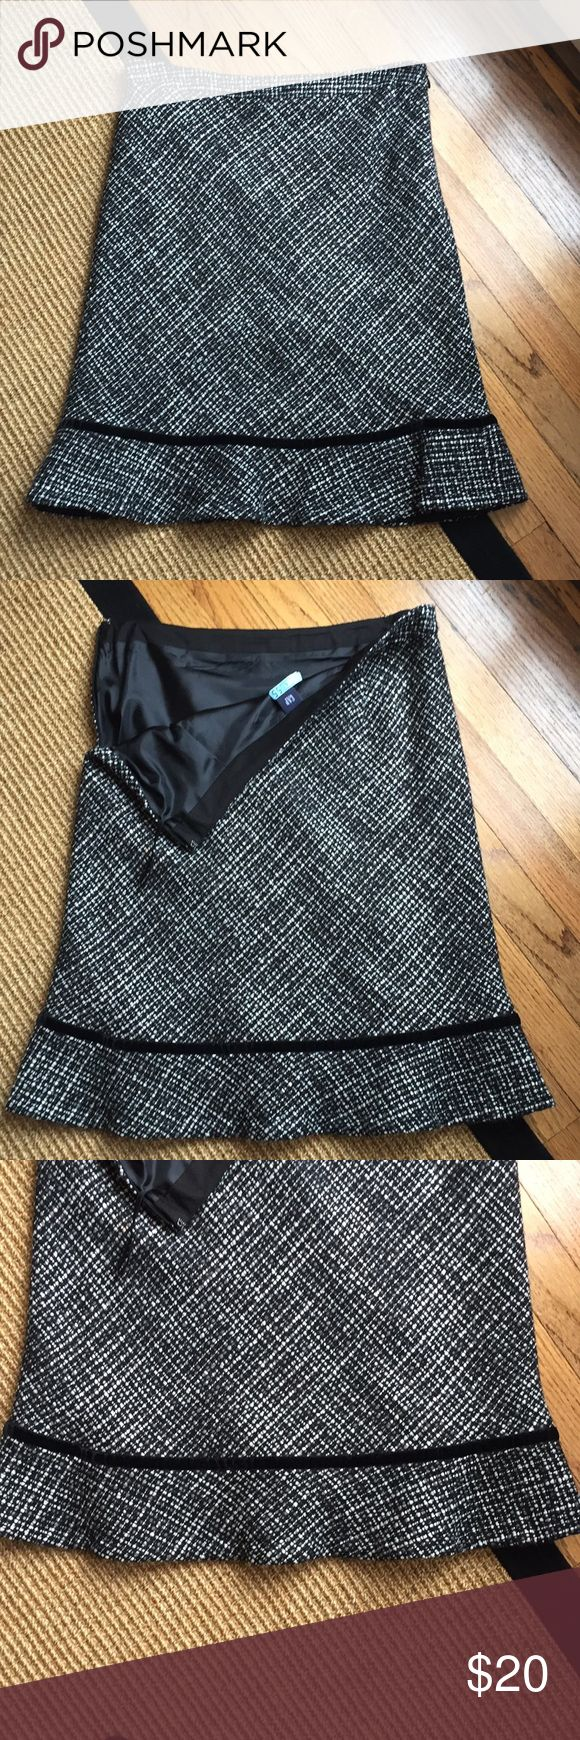 Gap Women's Black and White Trumpet Skirt Good Condition Size: 8 GAP Skirts